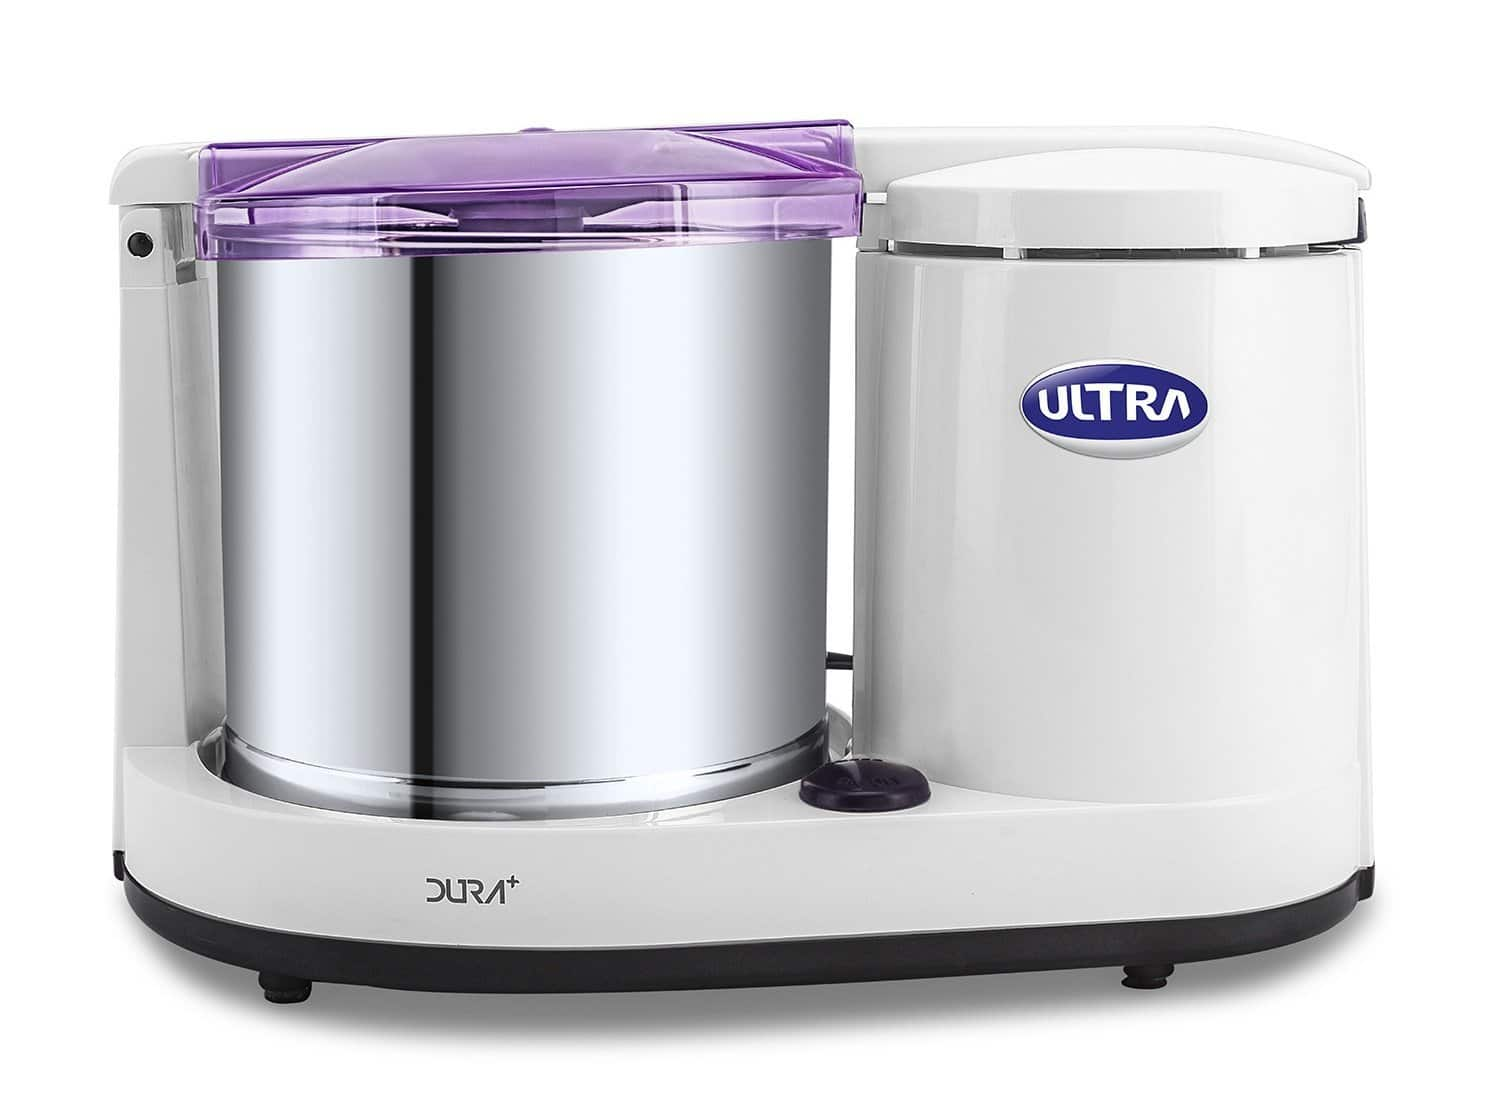 Used-Like New Ultra Dura+ Table Top 1.25L Wet Grinder with Atta Kneader - 173+Tax+FS $172.52